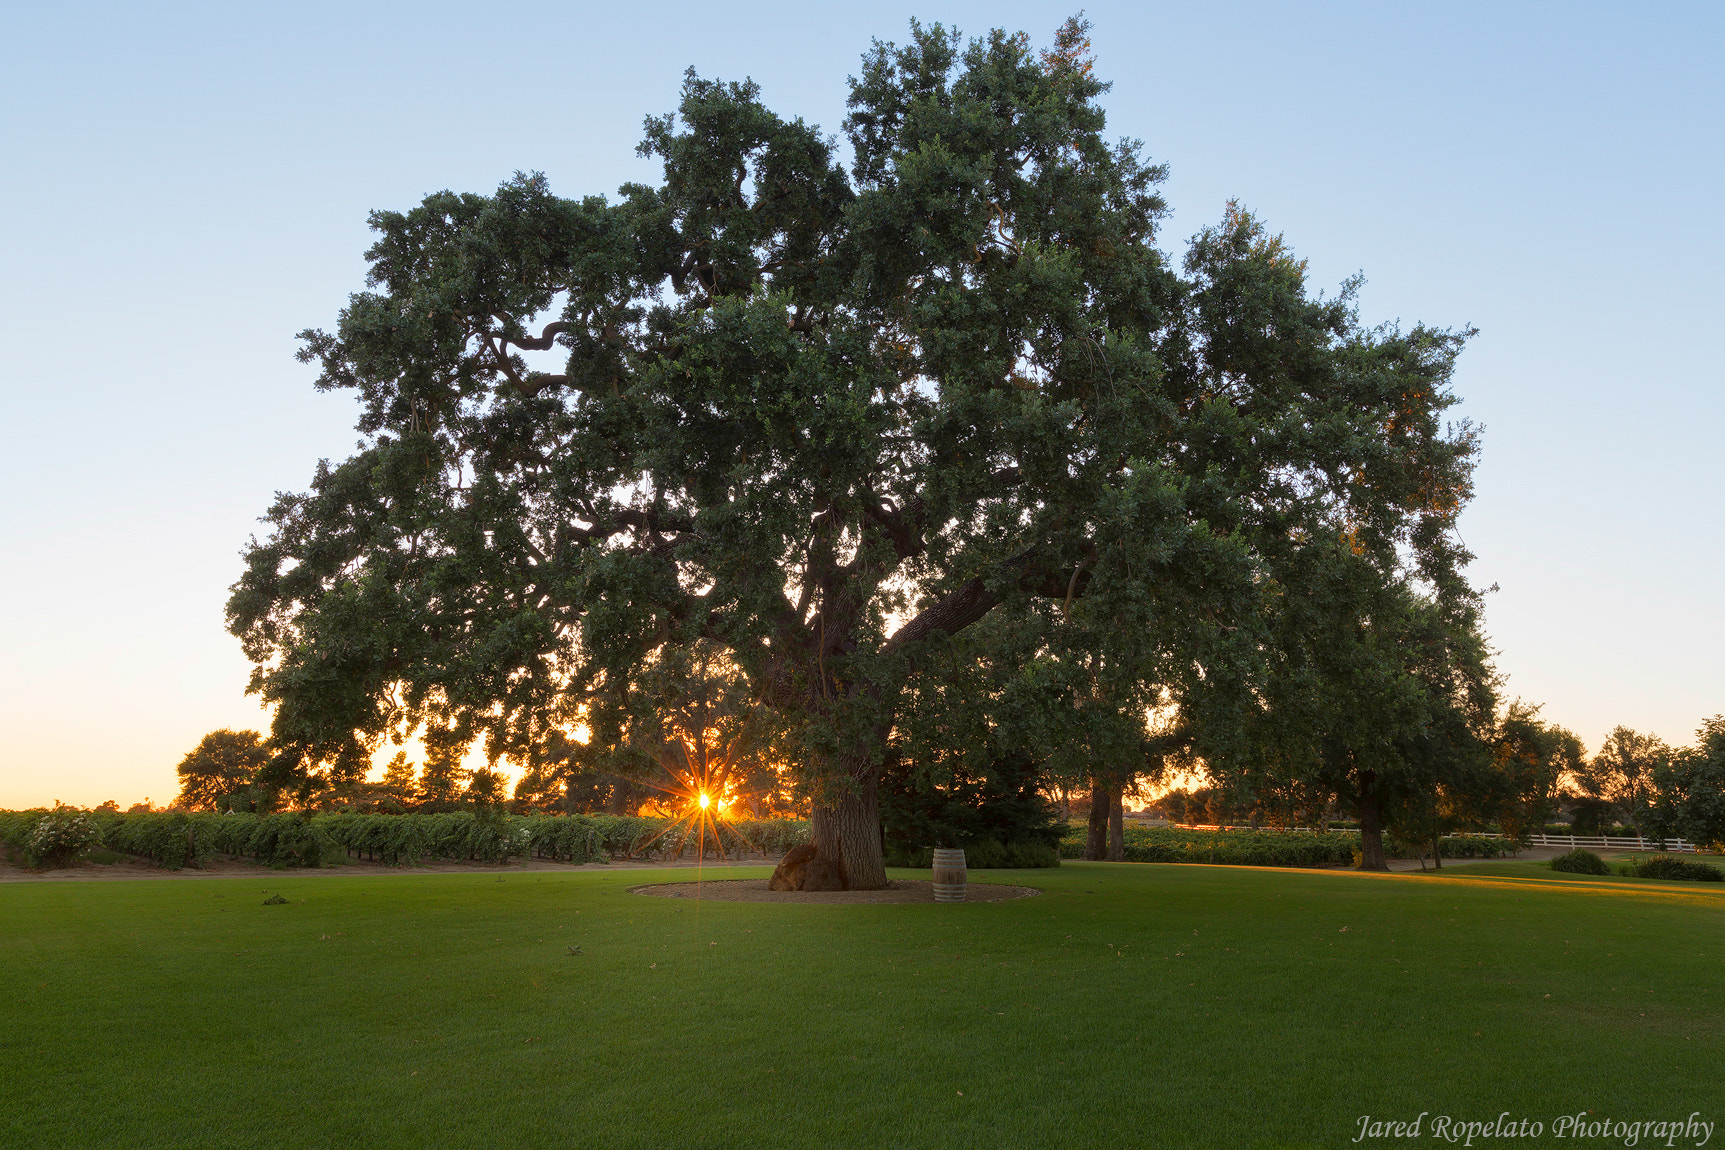 Photograph Oak Farms Tree by jared ropelato on 500px